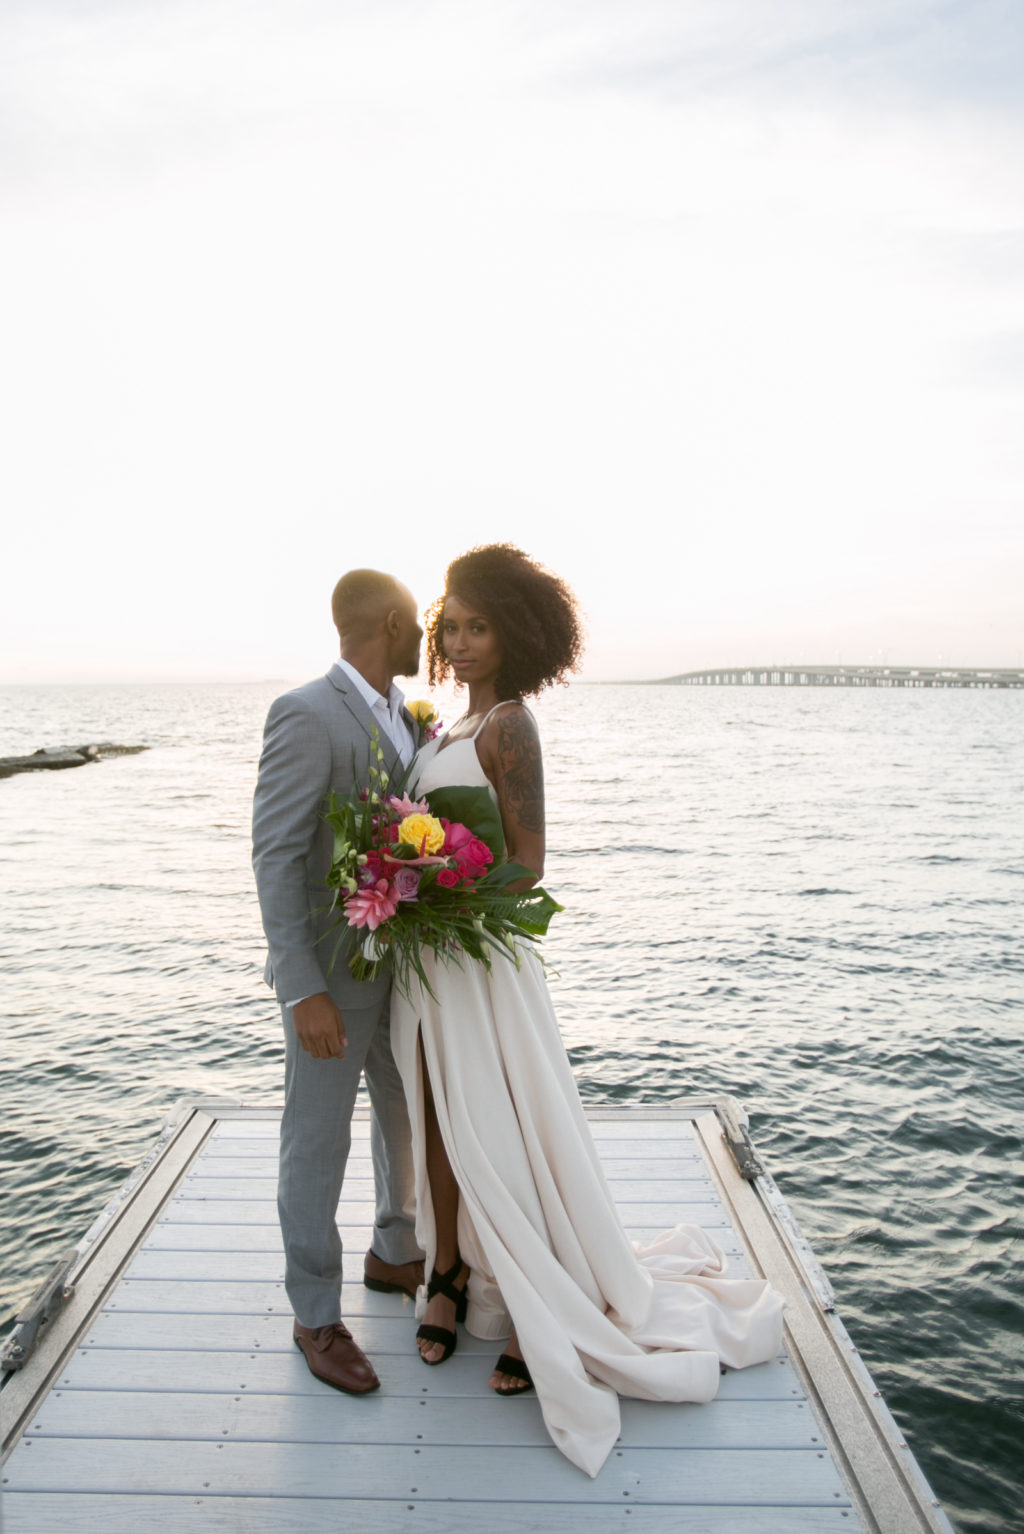 Modern Tropical Inspired Florida Bride and Groom, On Waterfront Pier in Boho Off-White Dress with High Slip, Holding Vibrant Bridal Bouquet | Salt Shack On the Bay Wedding Styled Shoot | Tampa Bay Wedding Photographer Carrie Wildes Photography | South Tampa Wedding Planner Socialite Events